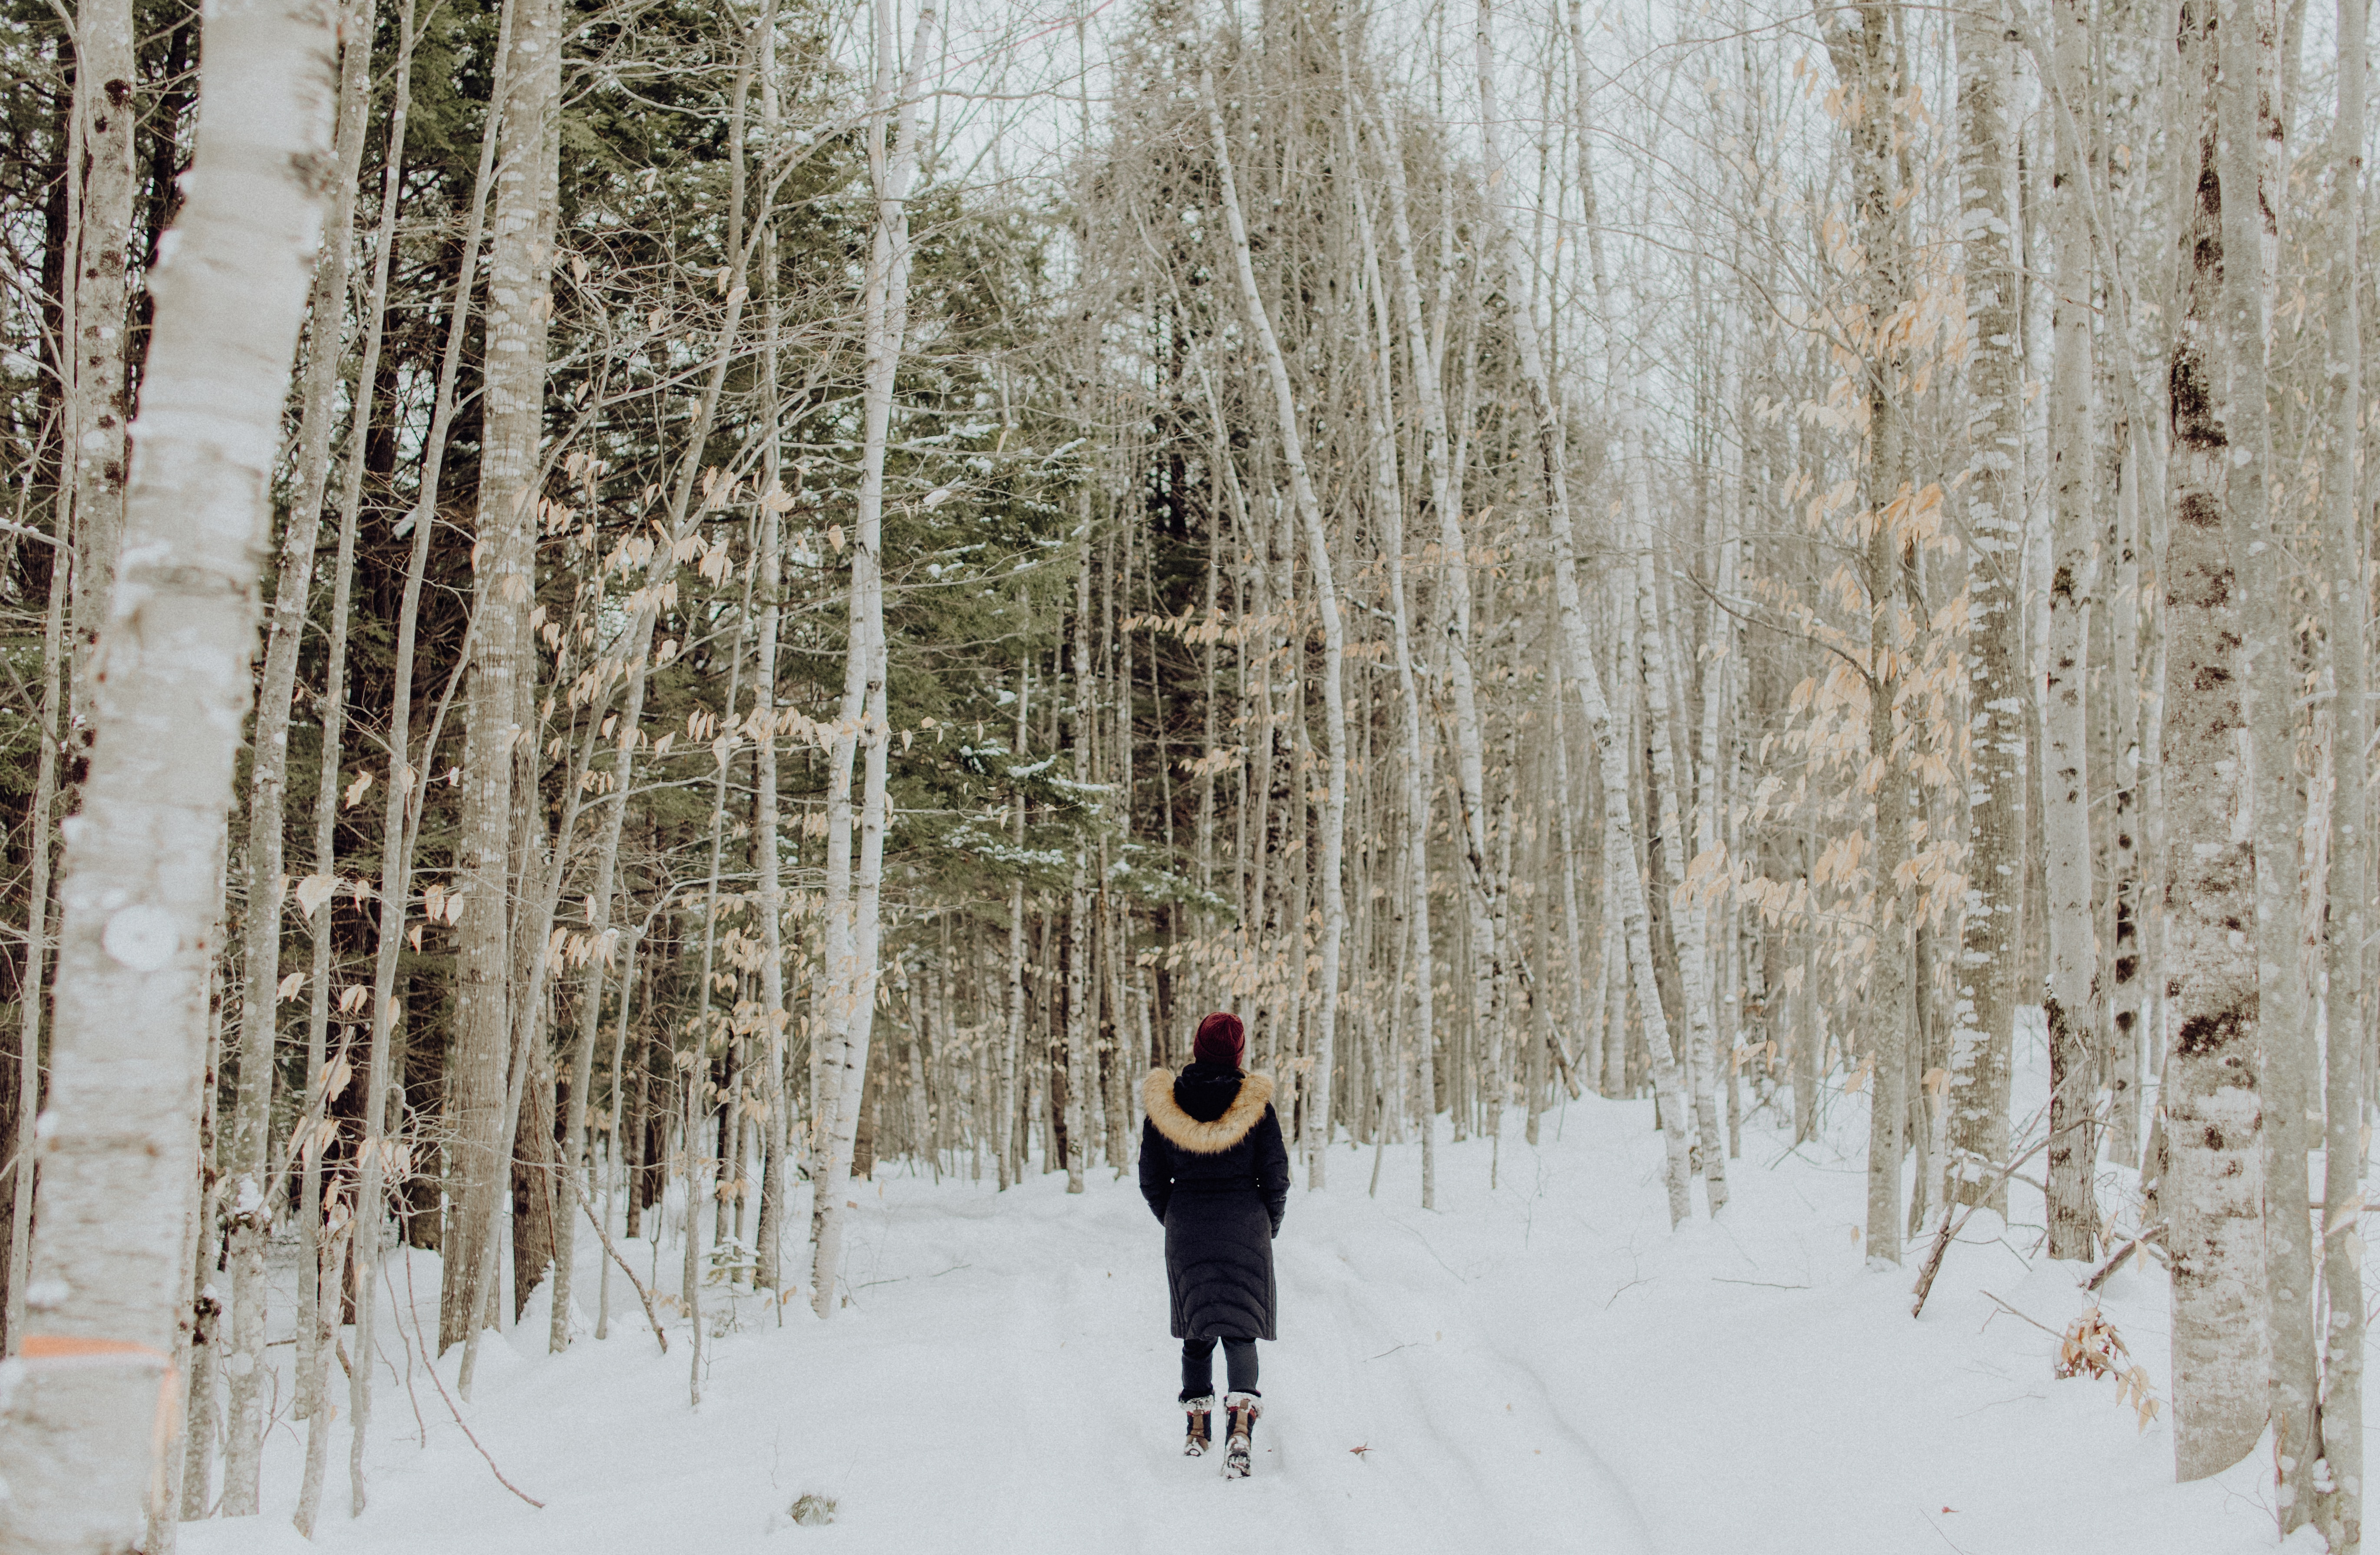 145172 download wallpaper Miscellanea, Miscellaneous, Loneliness, Forest, Snow, Winter, Garden screensavers and pictures for free